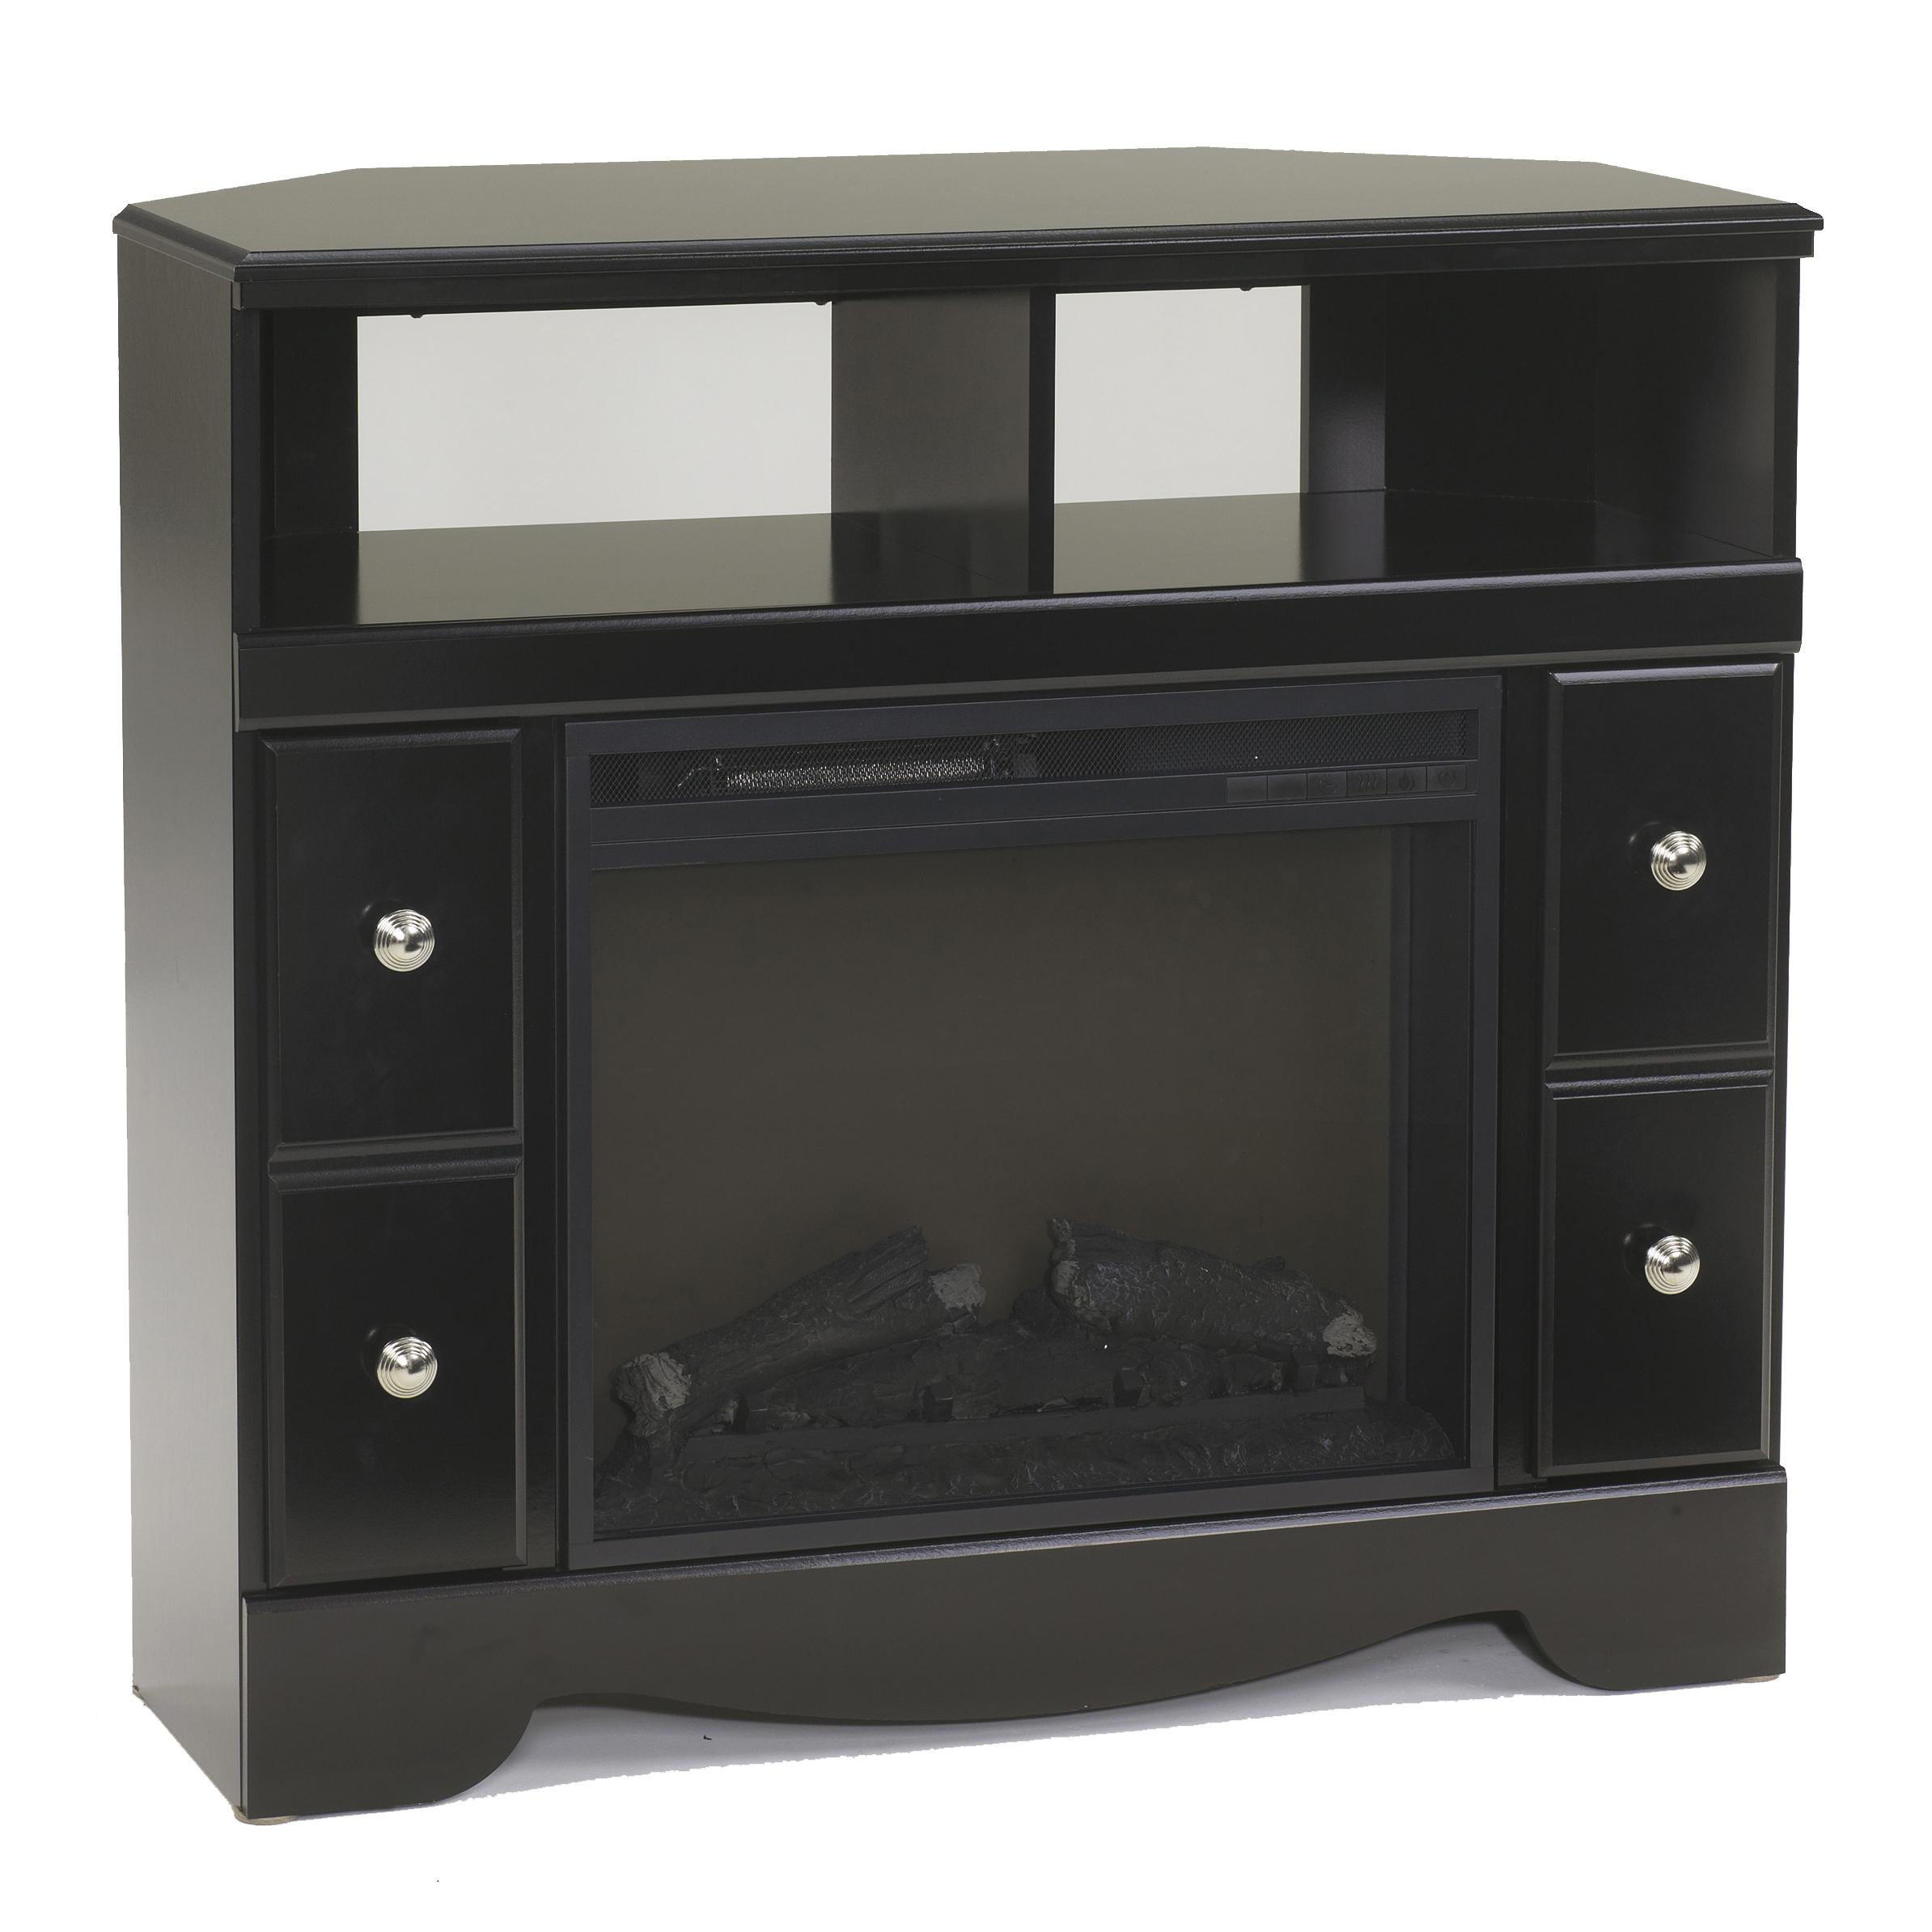 Signature Design by Ashley Shay Corner TV Stand/Fireplace  - Item Number: W271-12+W100-01